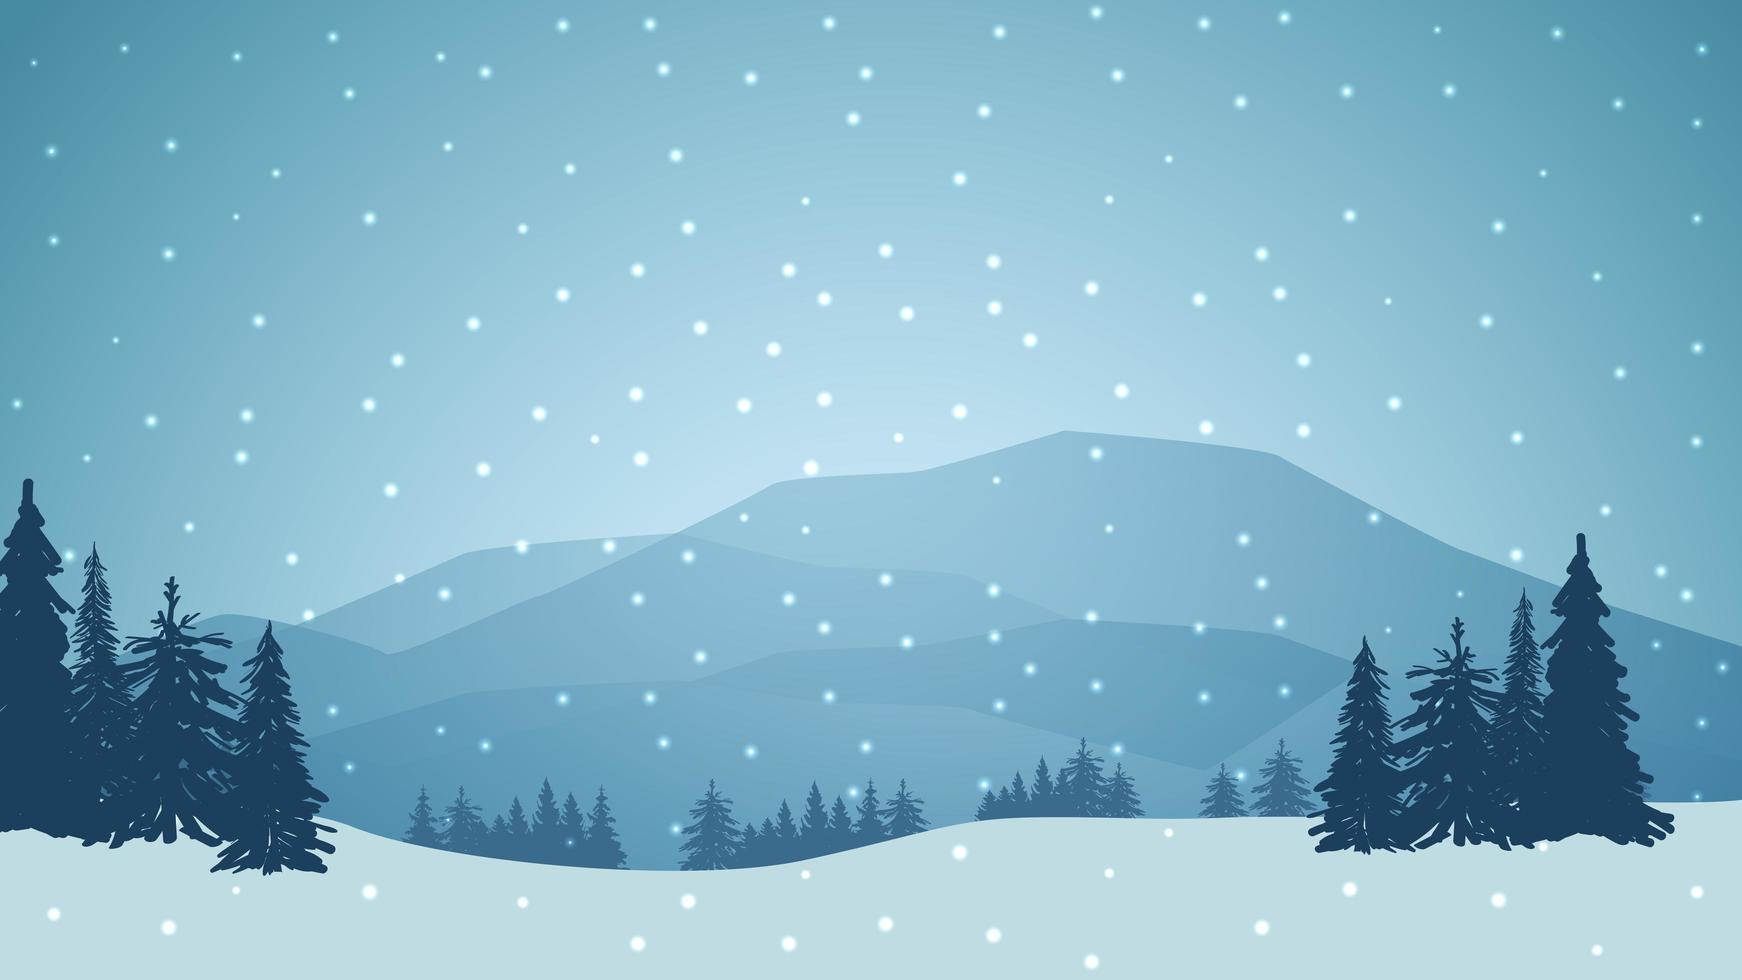 Winter landscape with mountains on the horizon vector